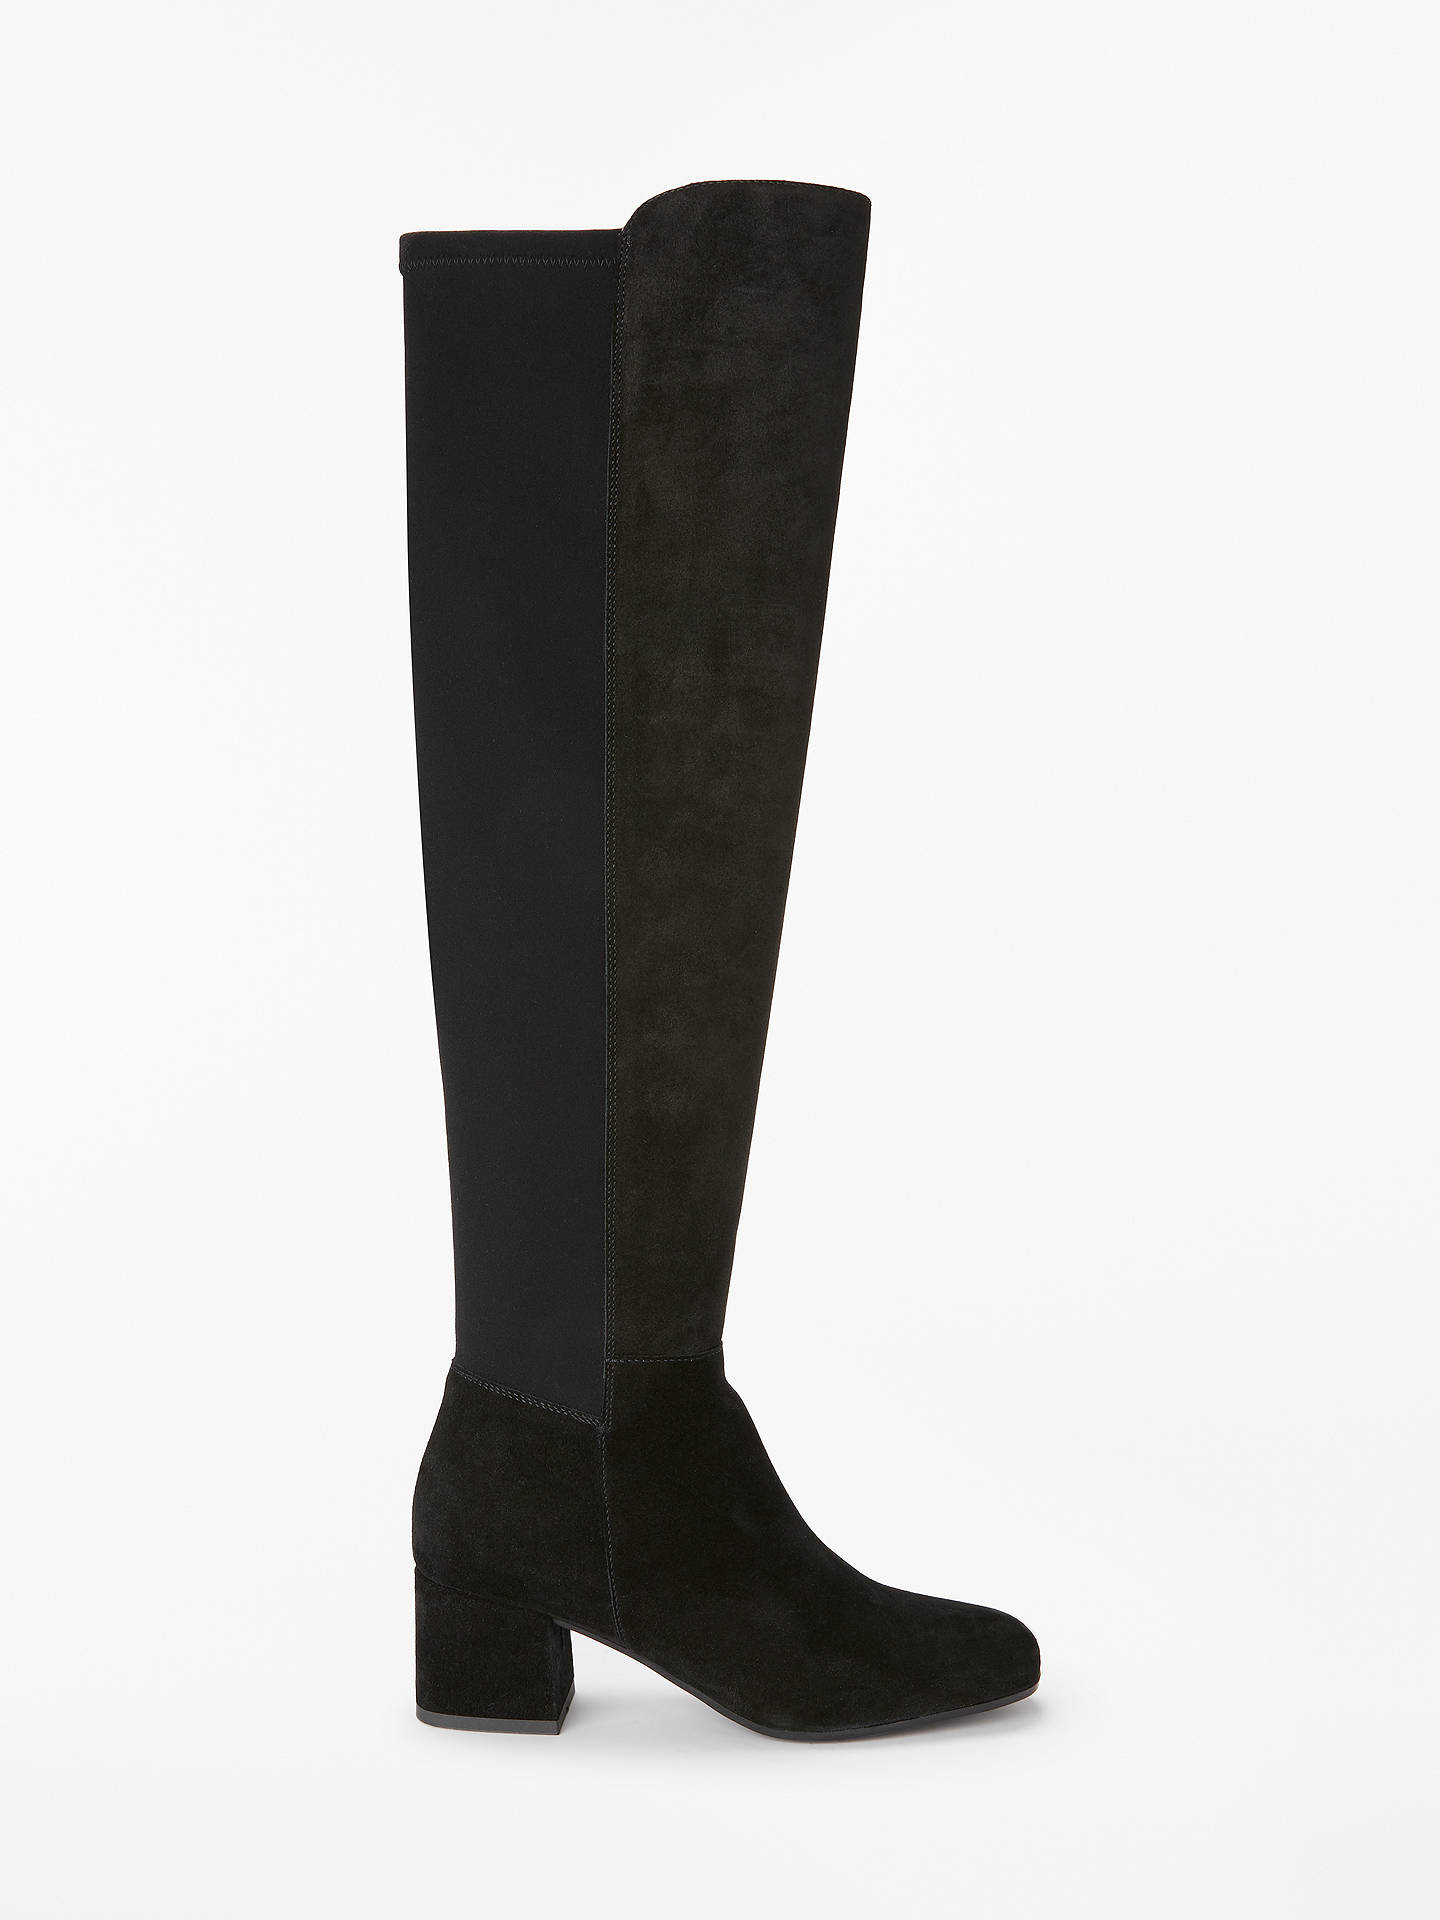 8c10d6a01 Buy John Lewis & Partners Stephanie Stretch Panel Over the Knee Boots, Black  Suede, ...